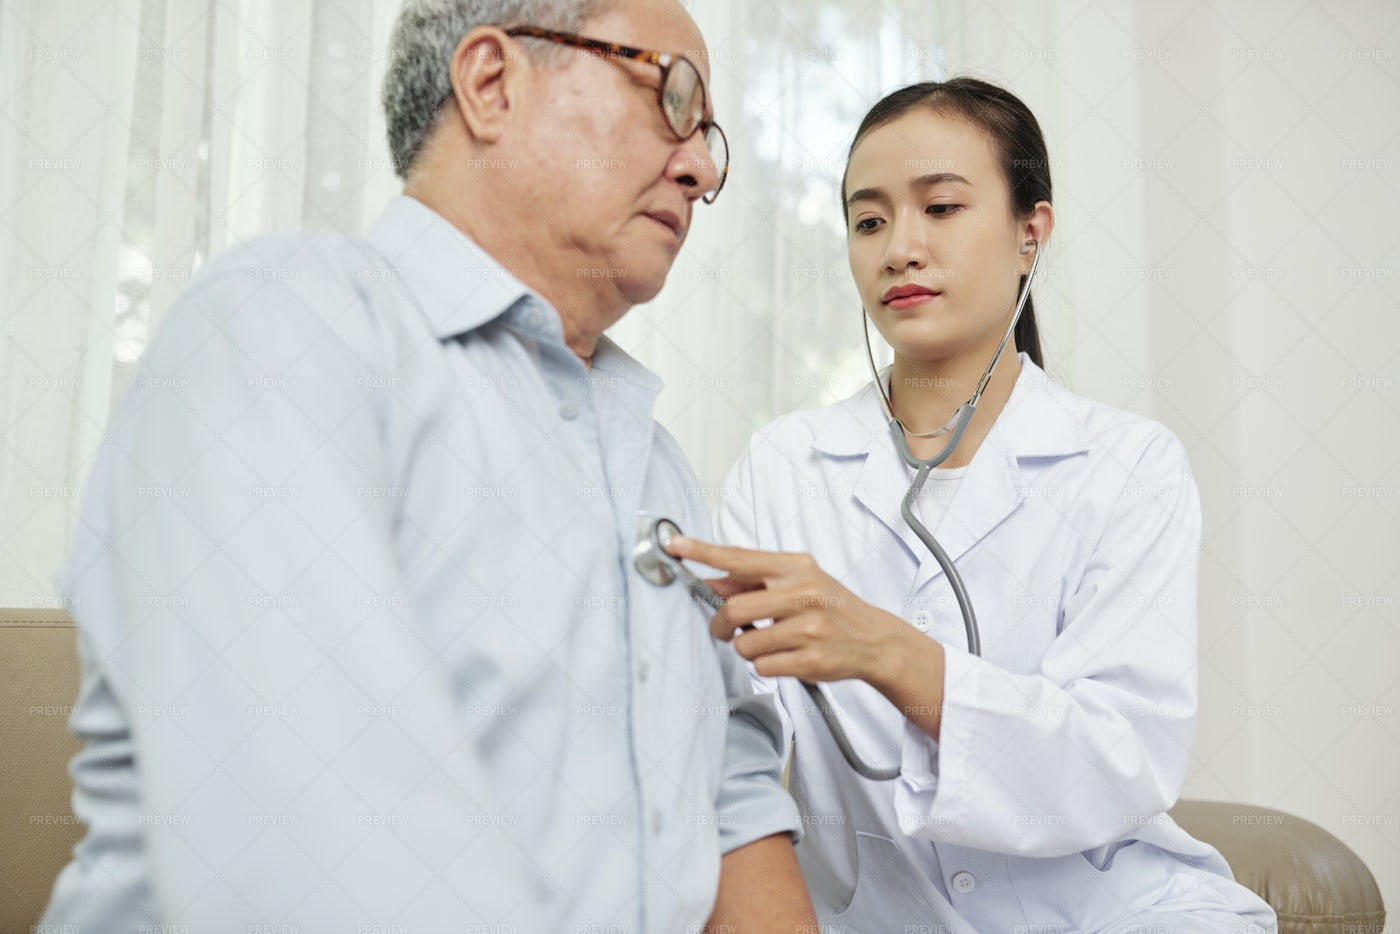 Doctor Listening To The Patient: Stock Photos